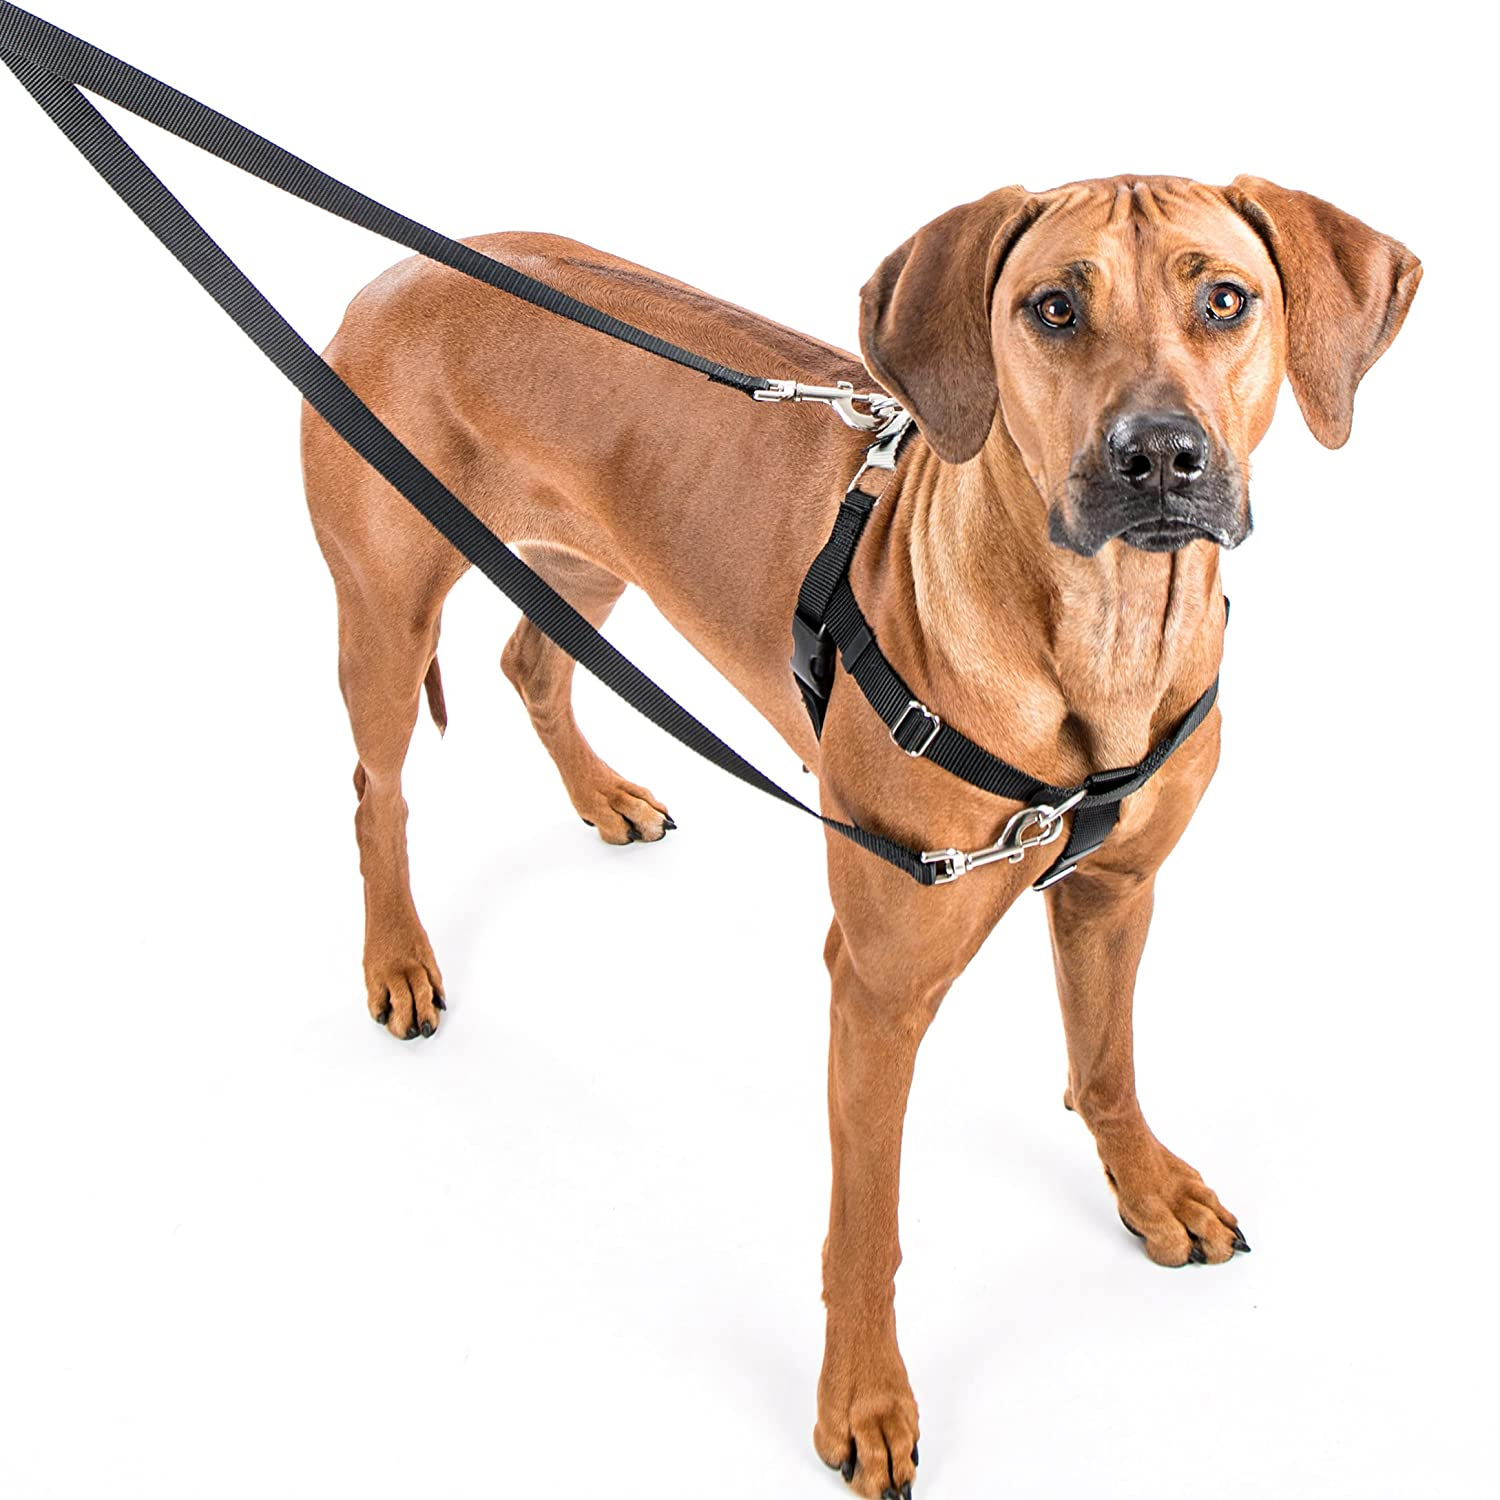 Black XXLarge (1Inch Wide)2 Hounds Design Freedom NoPull Harness Only, No Leash, Black, Medium (5 8Inch Wide)